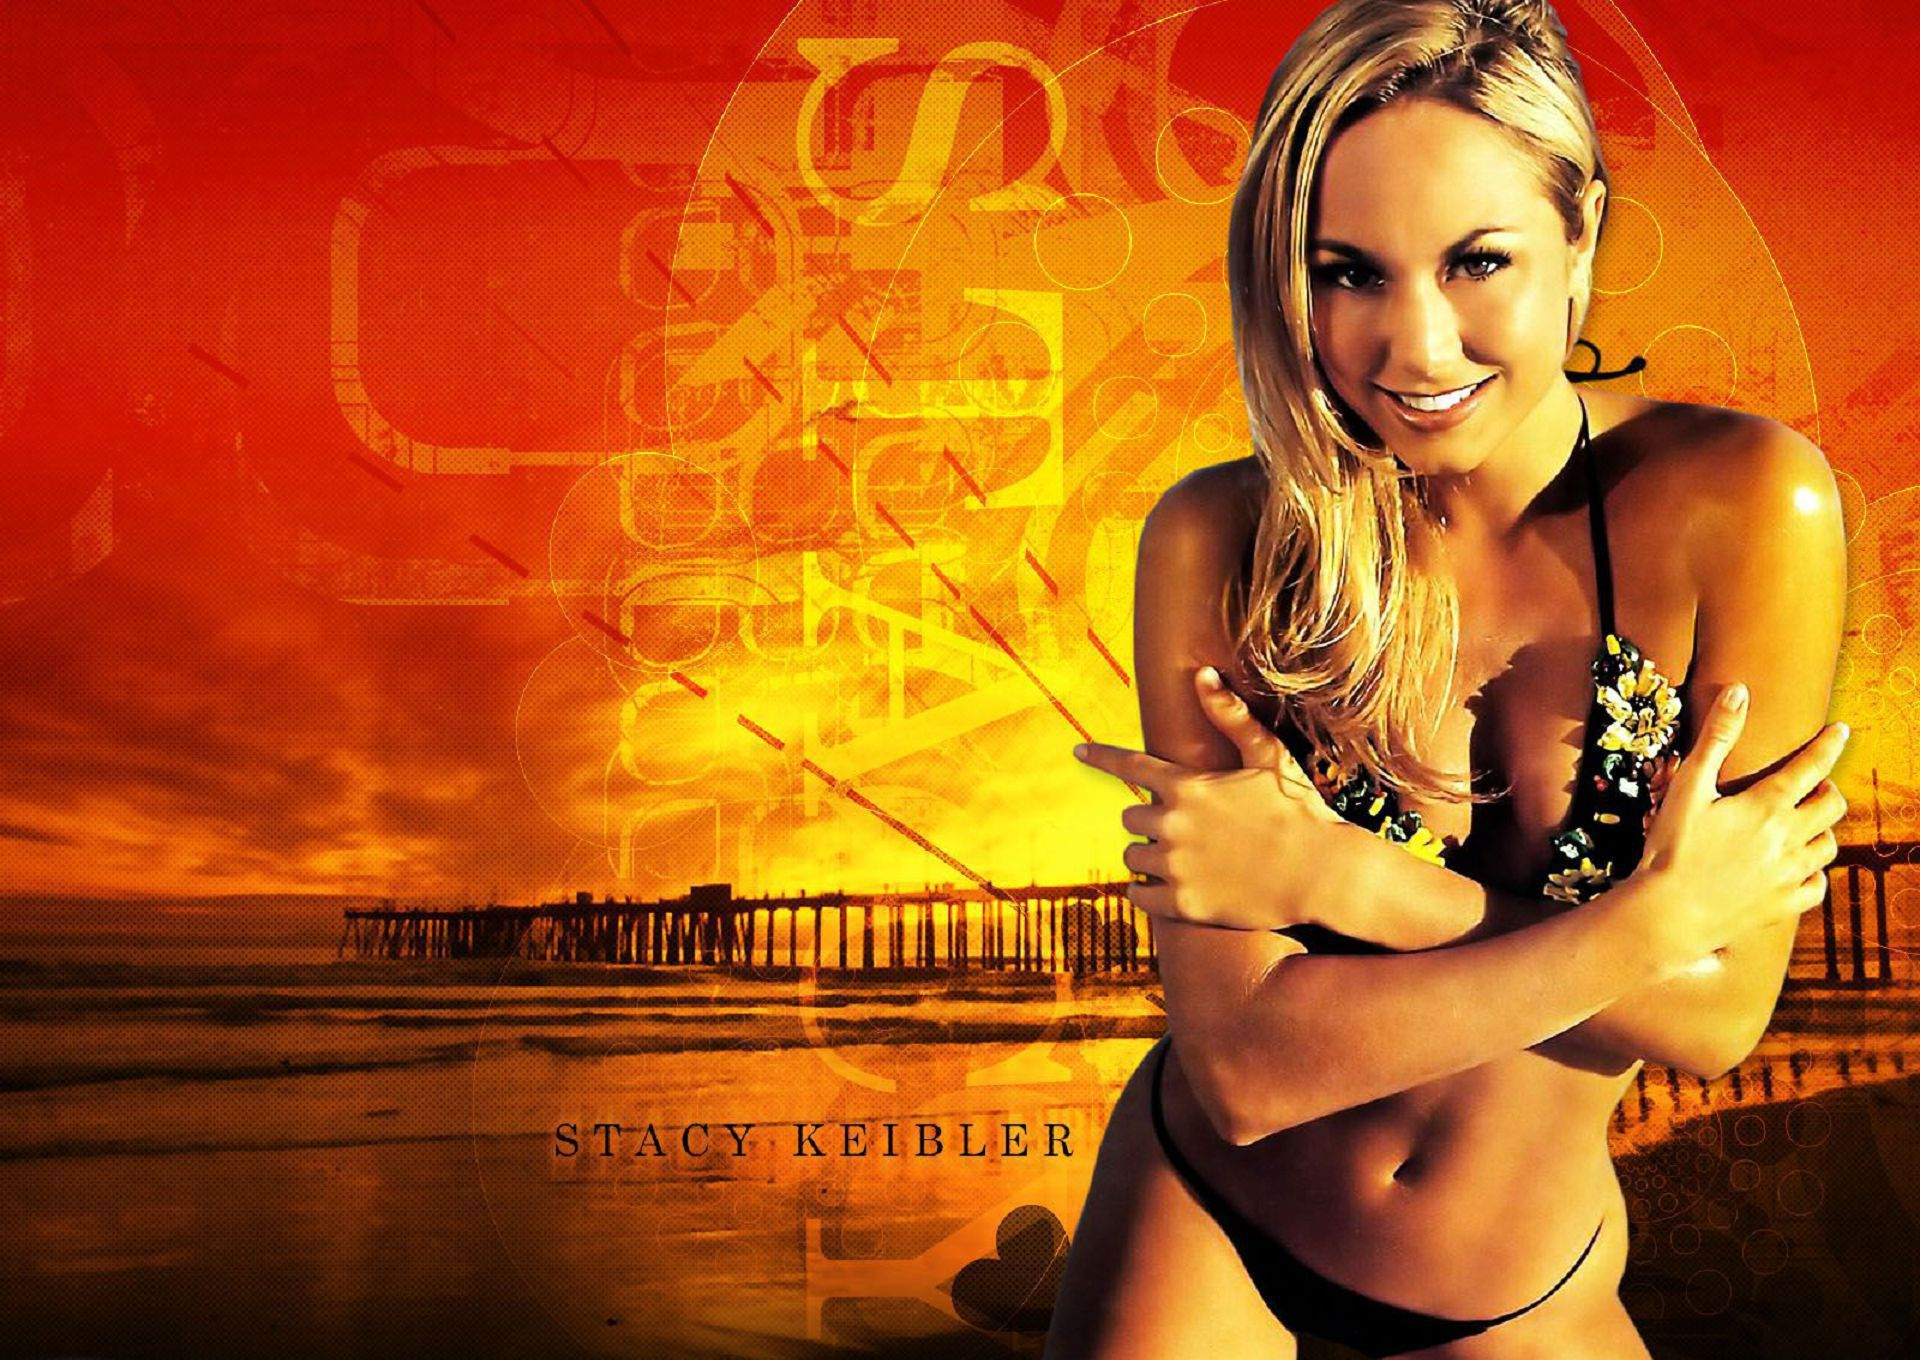 stacy keibler 1440x900 wallpapers - photo #34